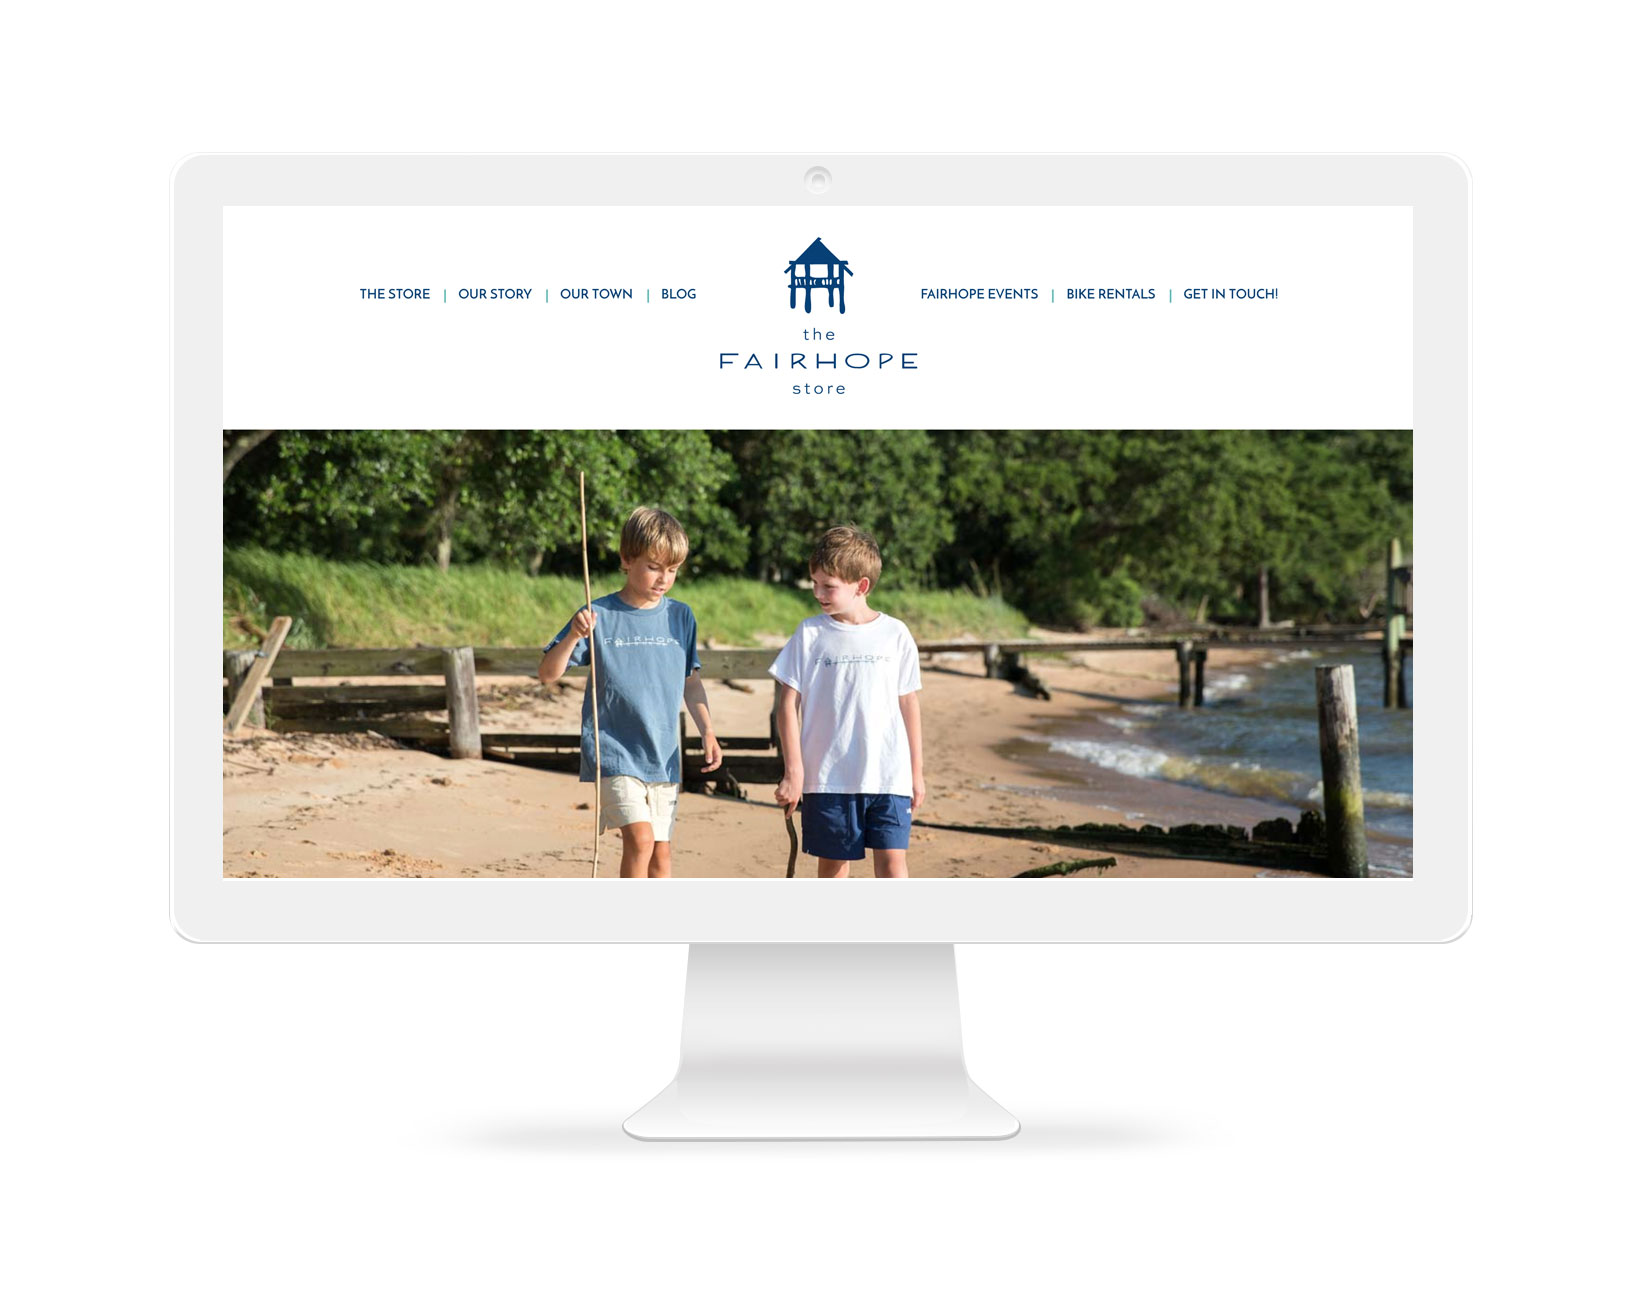 Fairhope Website Design